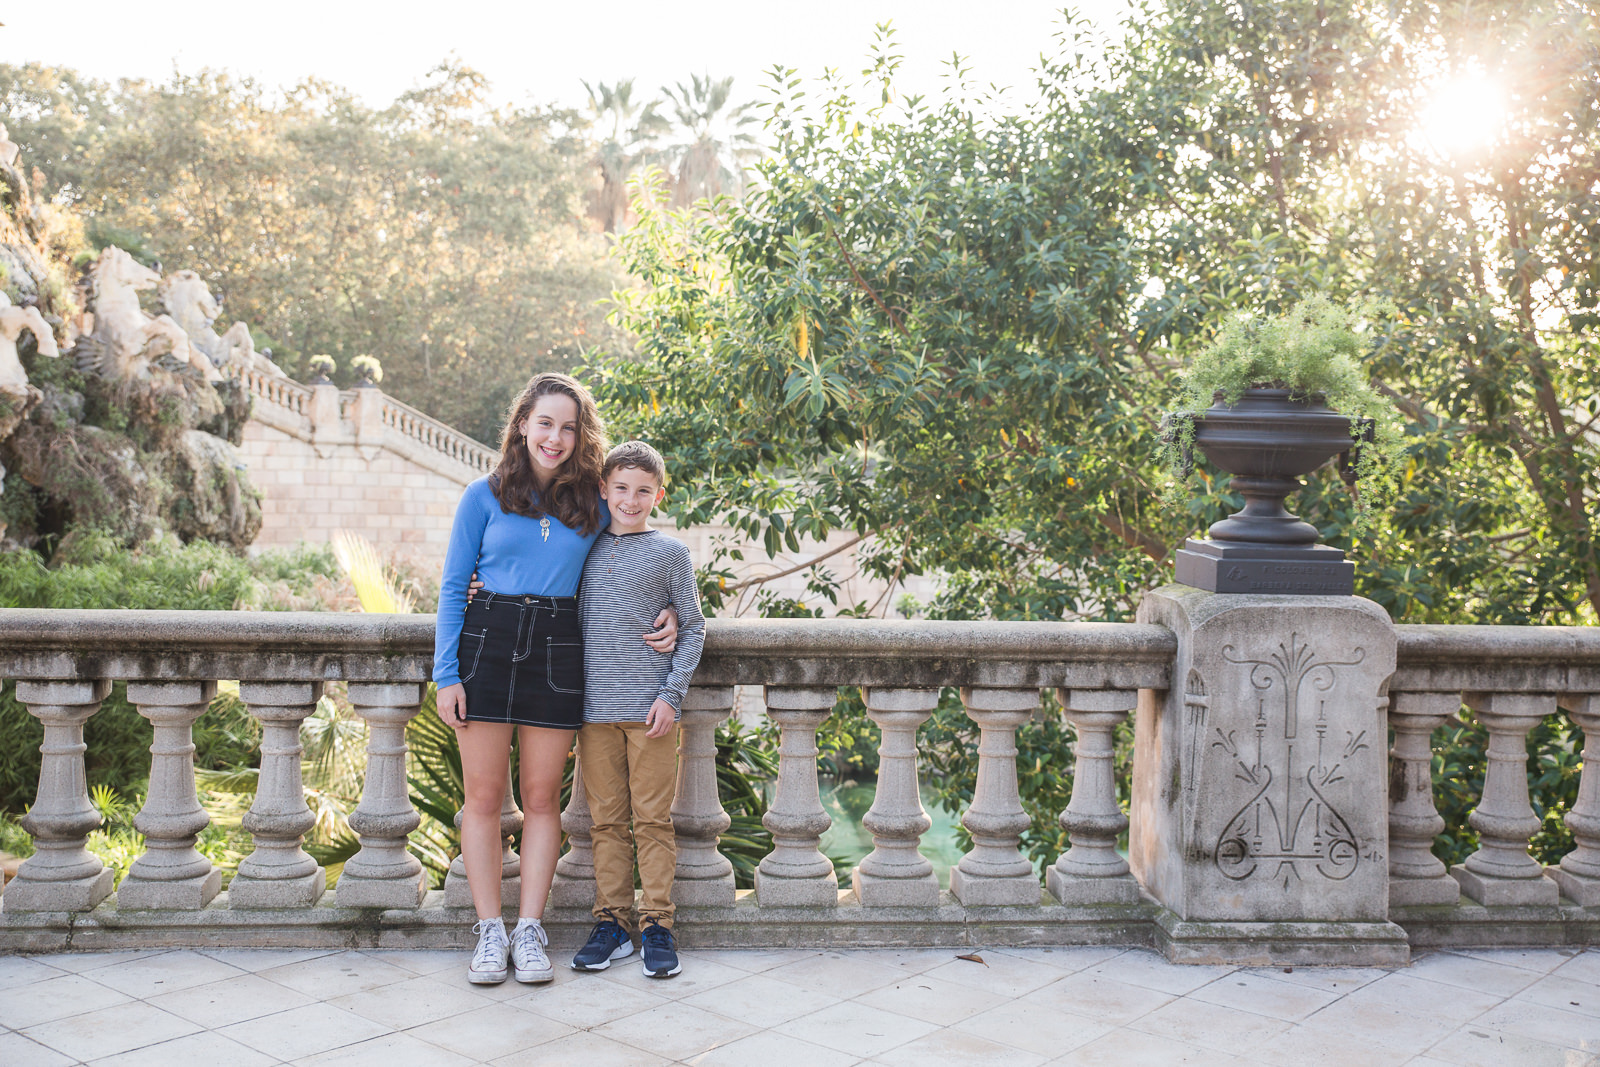 Family photographer in Barcelona | Natalia Wisniewska Photography